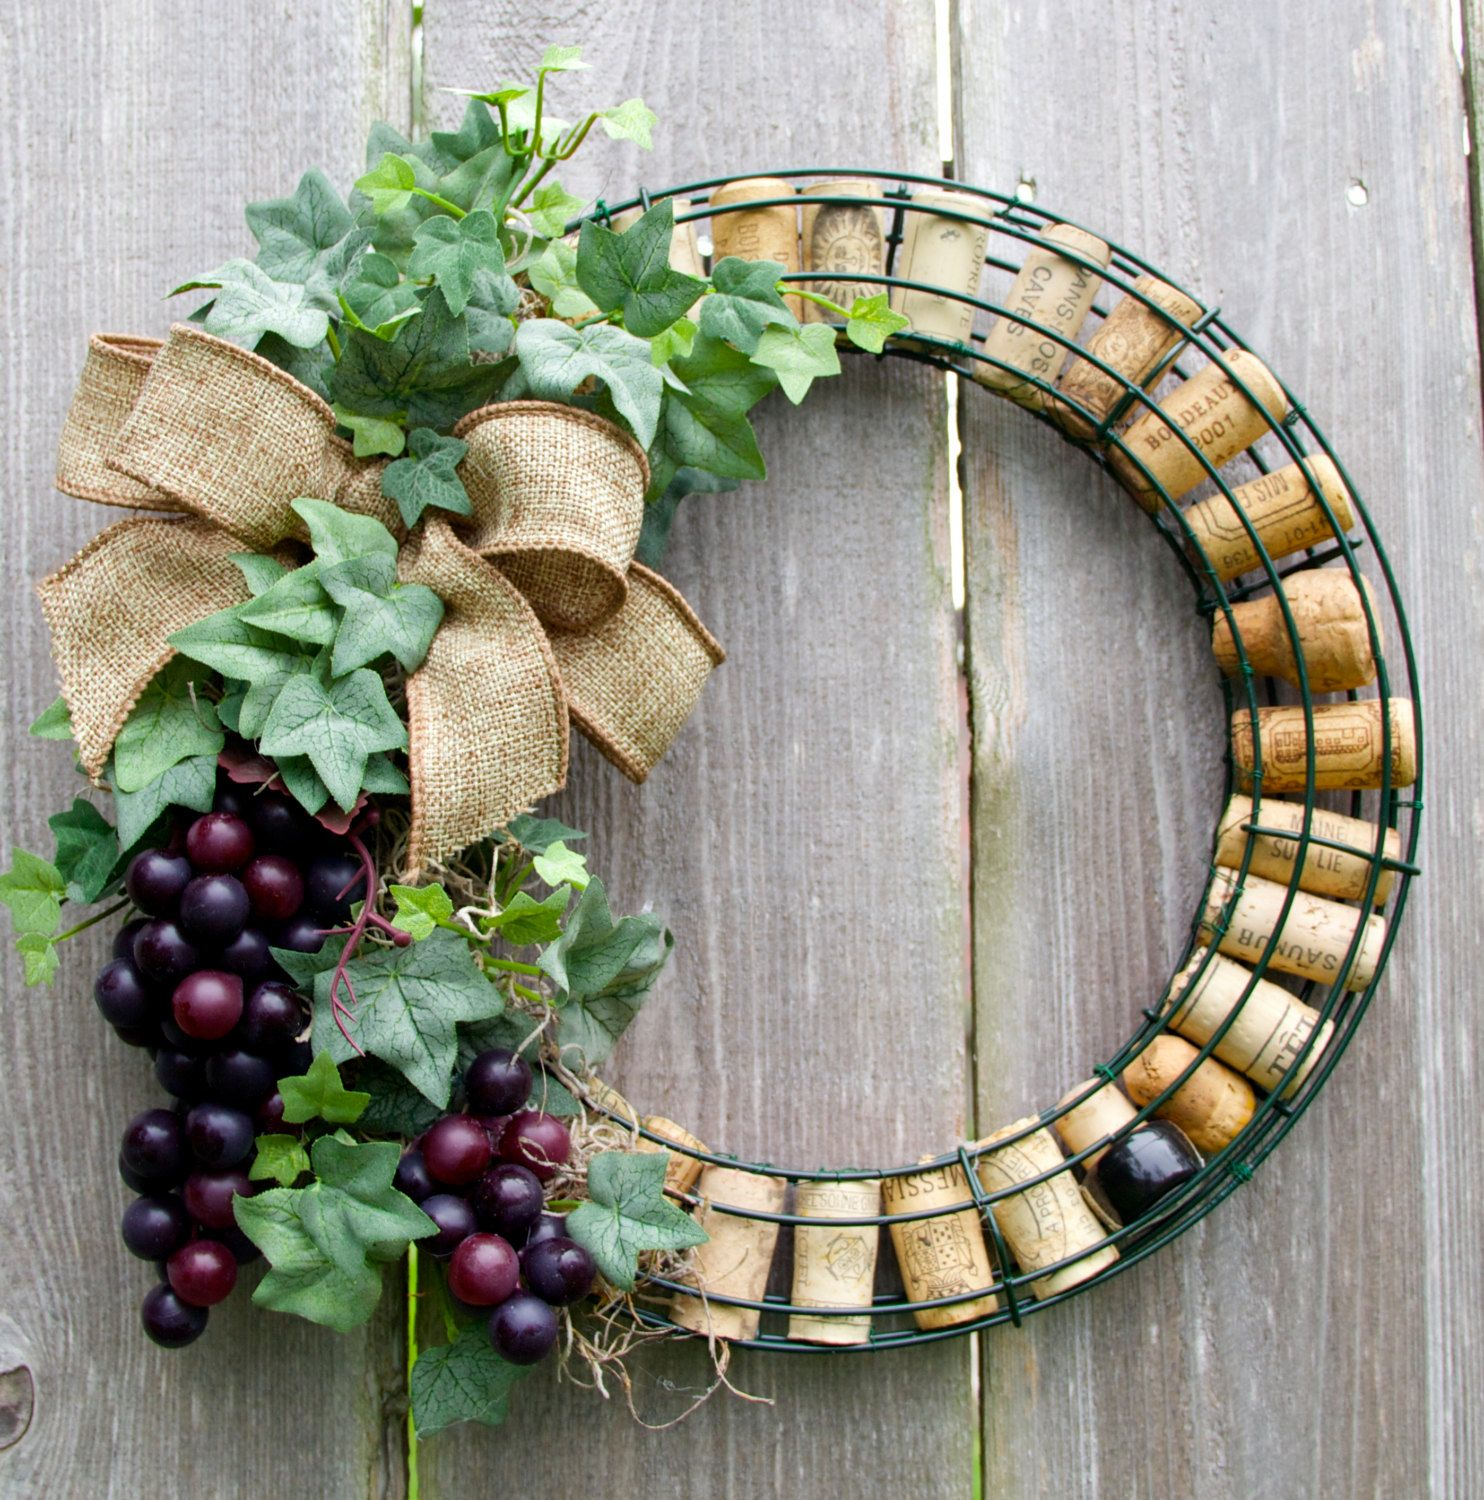 Wine cork wreath with grapes by darsisdesigns on etsy for Crafts to make with wine corks